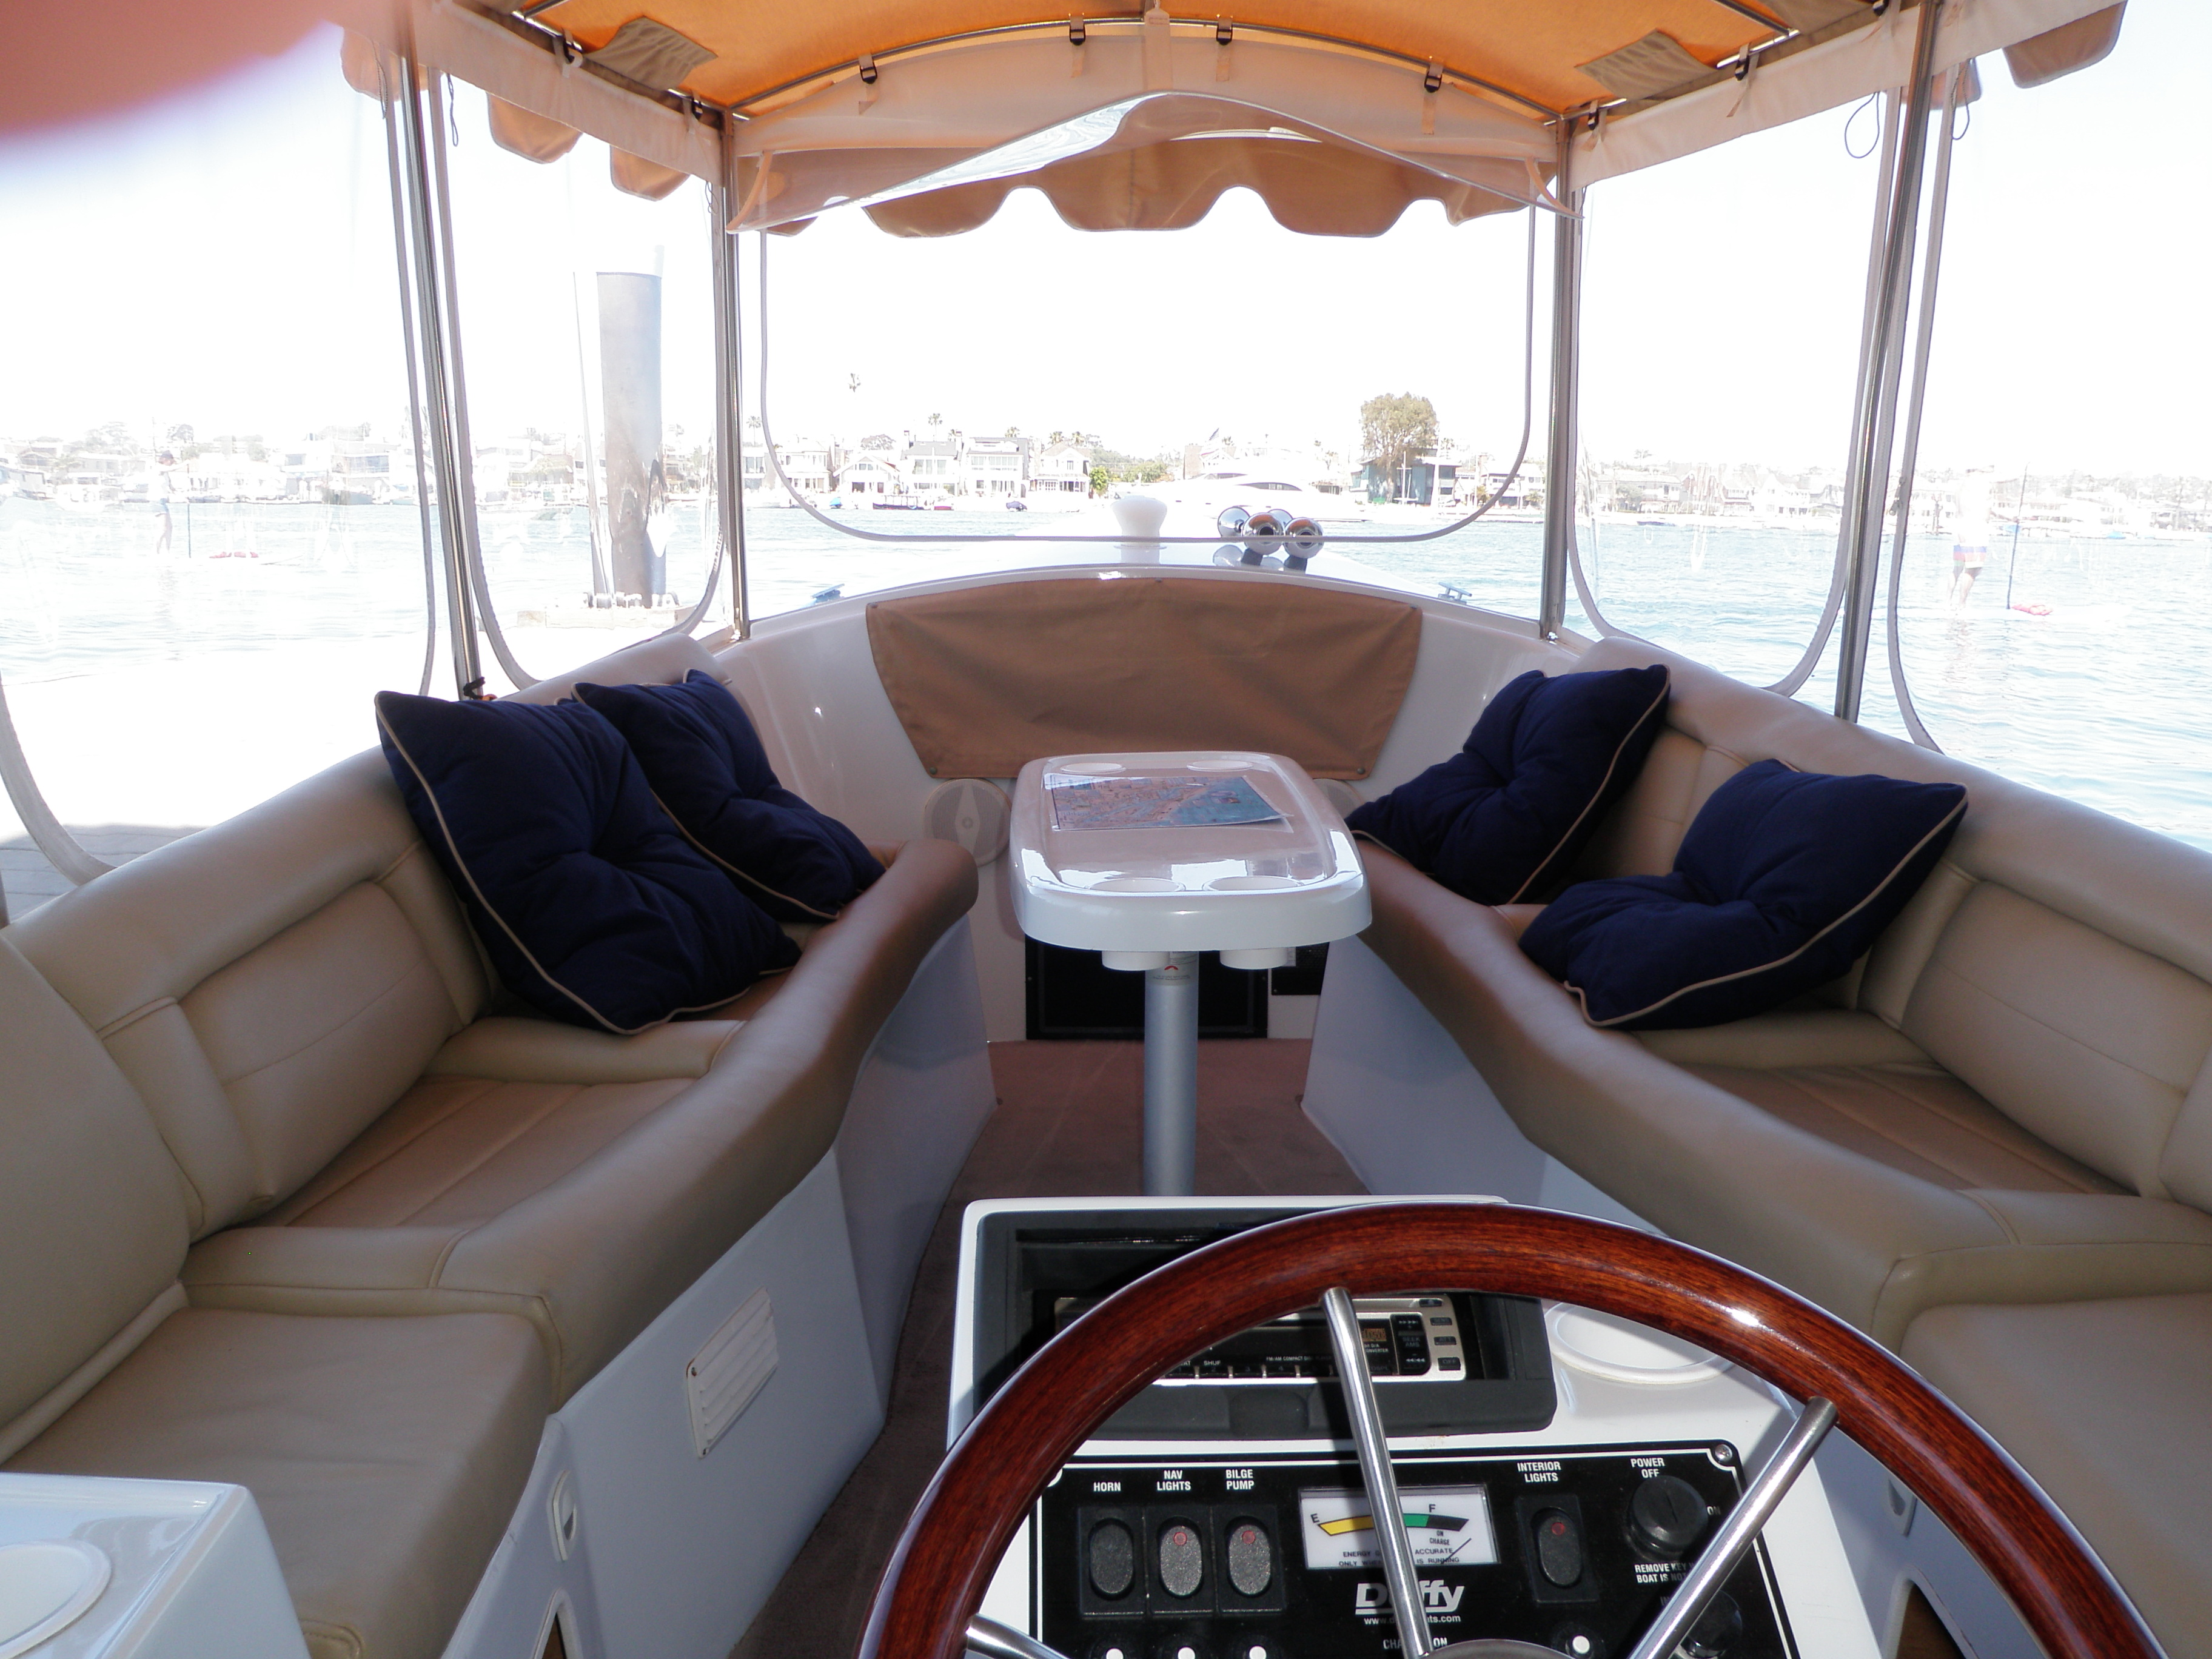 Duffy's Electric Boat Rentals Fort Lauderdale, FL, 33312 - YP.com